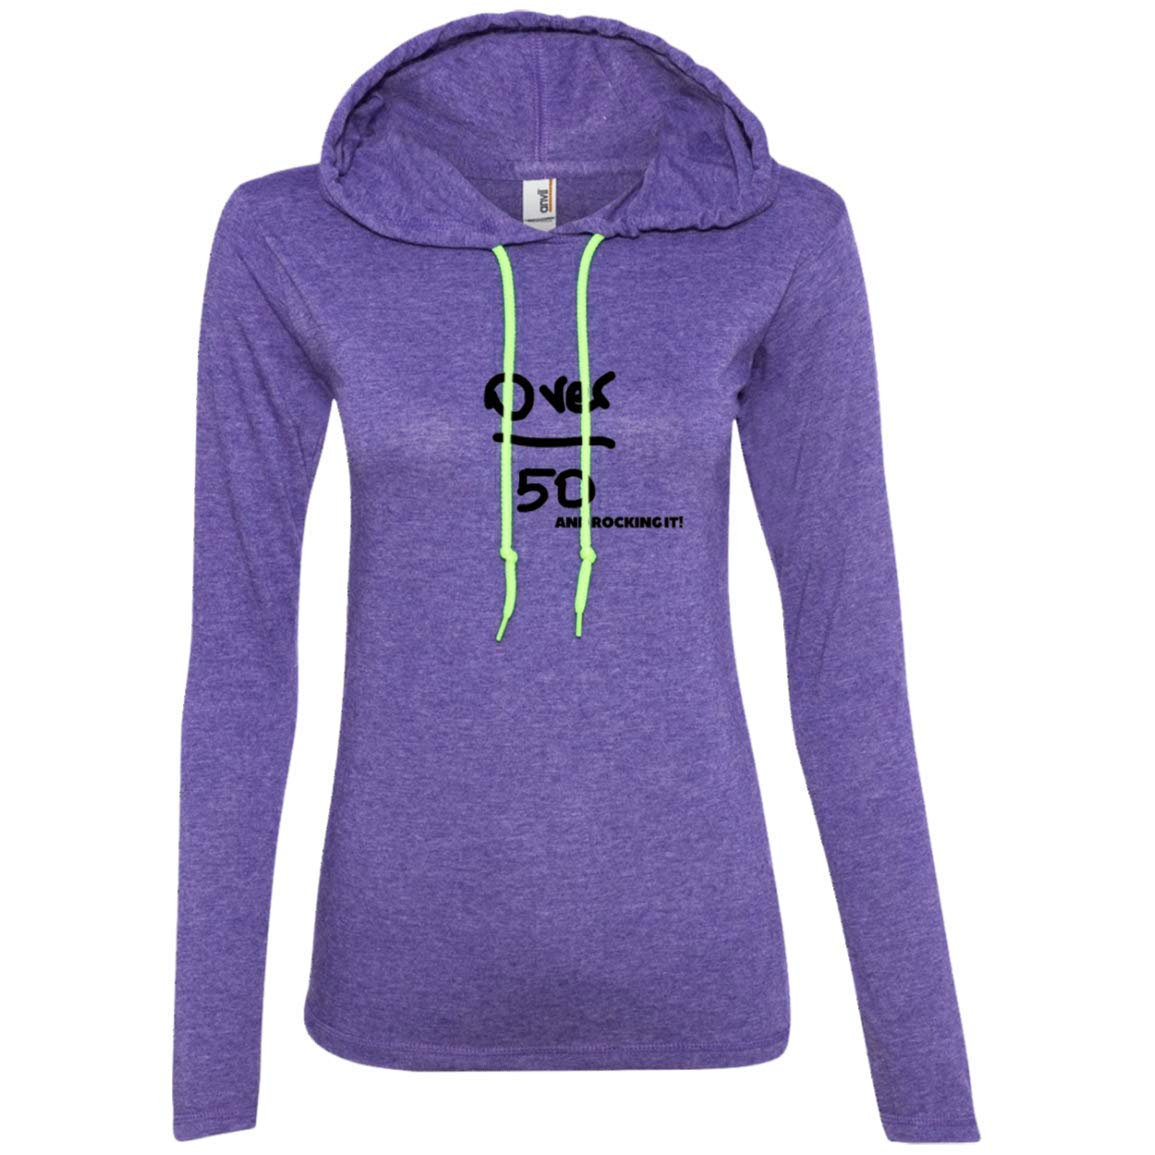 Over 50 and Rocking it 887L Anvil Ladies LS T-Shirt Hoodie